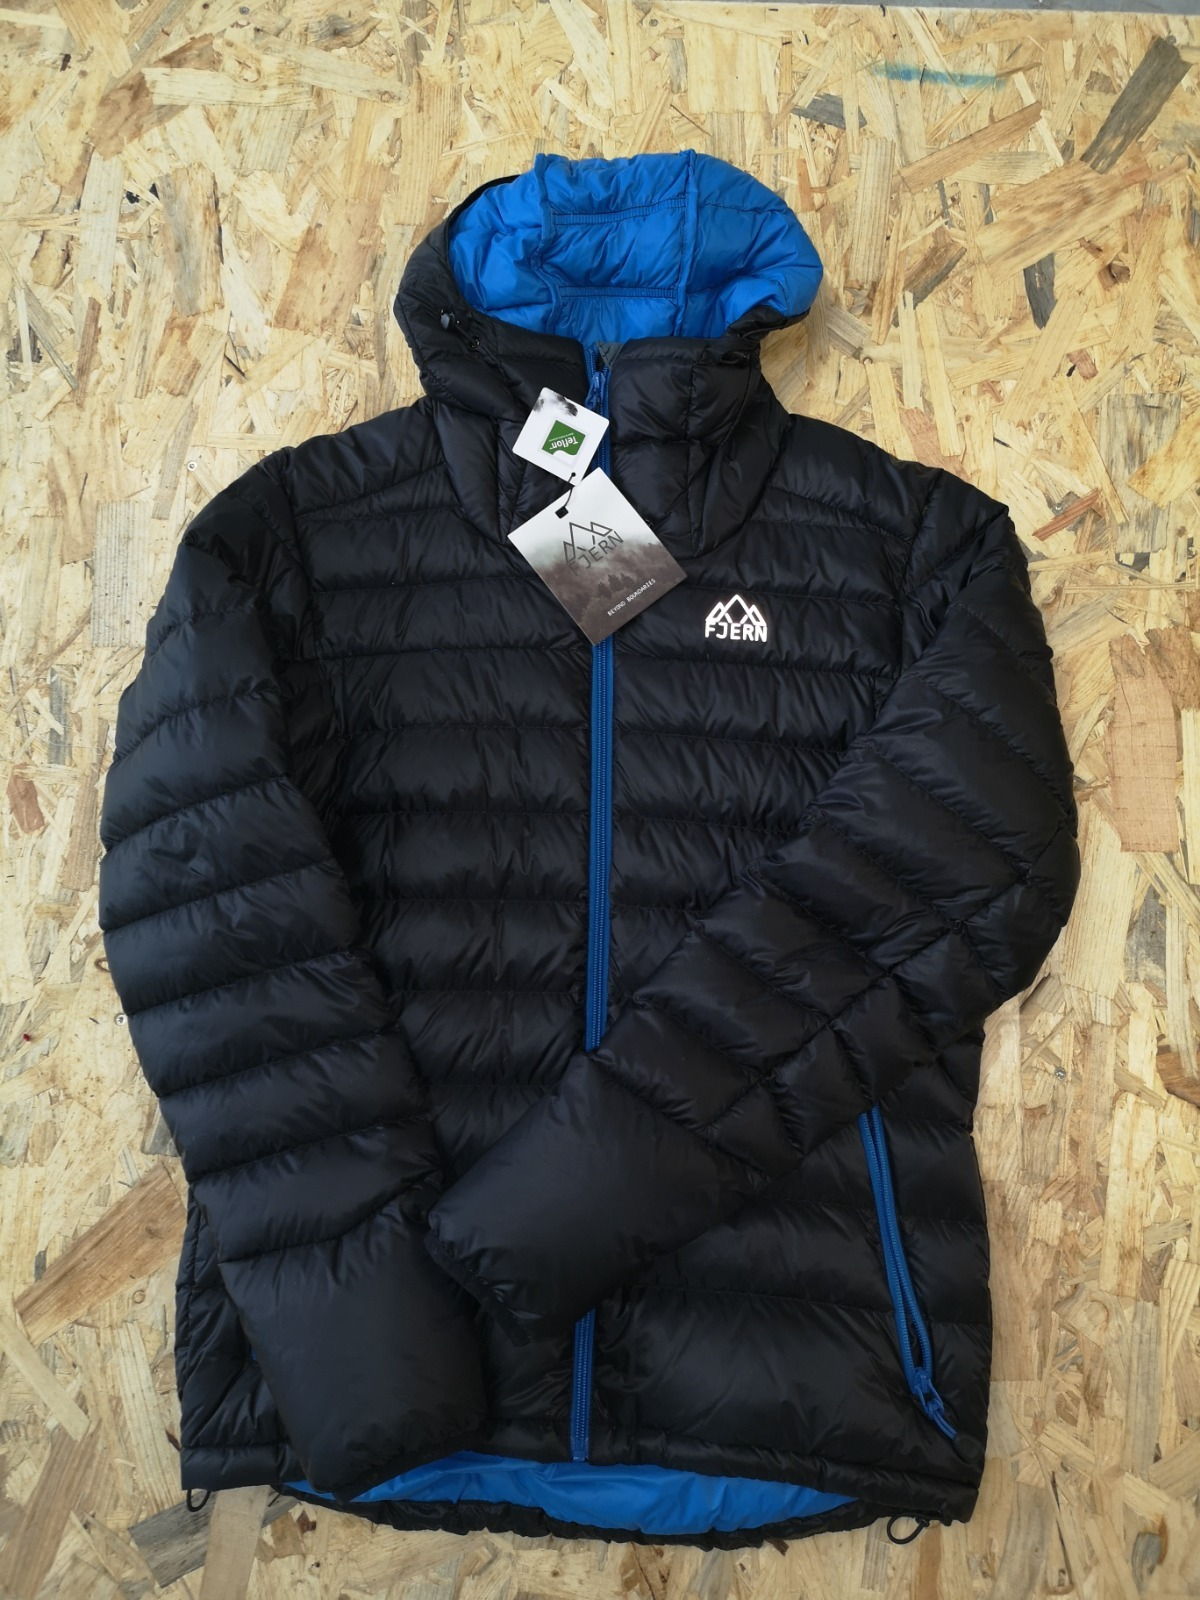 Fjern Down Jacket Black/Cobalt